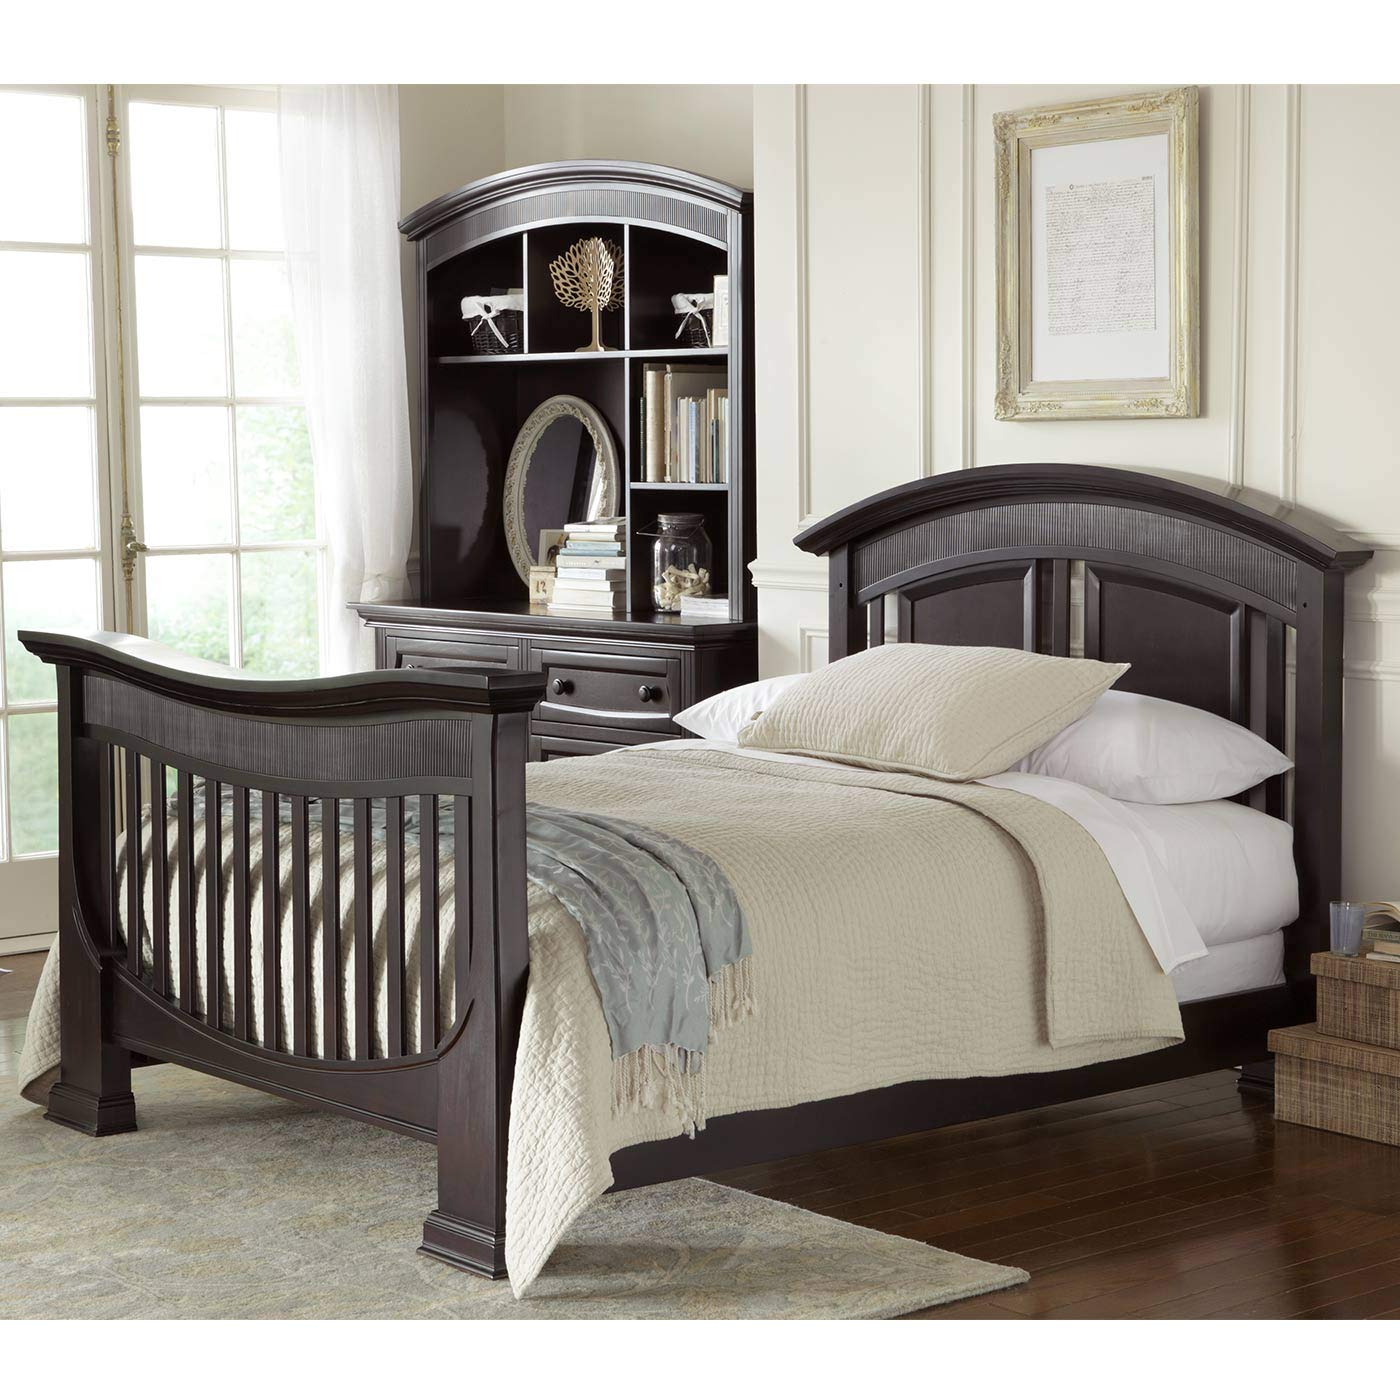 Full Size Conversion Kit Bed Rails for Baby Appleseed Beaumont, Chelmsford, Davenport, Kennedy, Millbury, Stratford Cribs (Espresso) by CC KITS (Image #3)